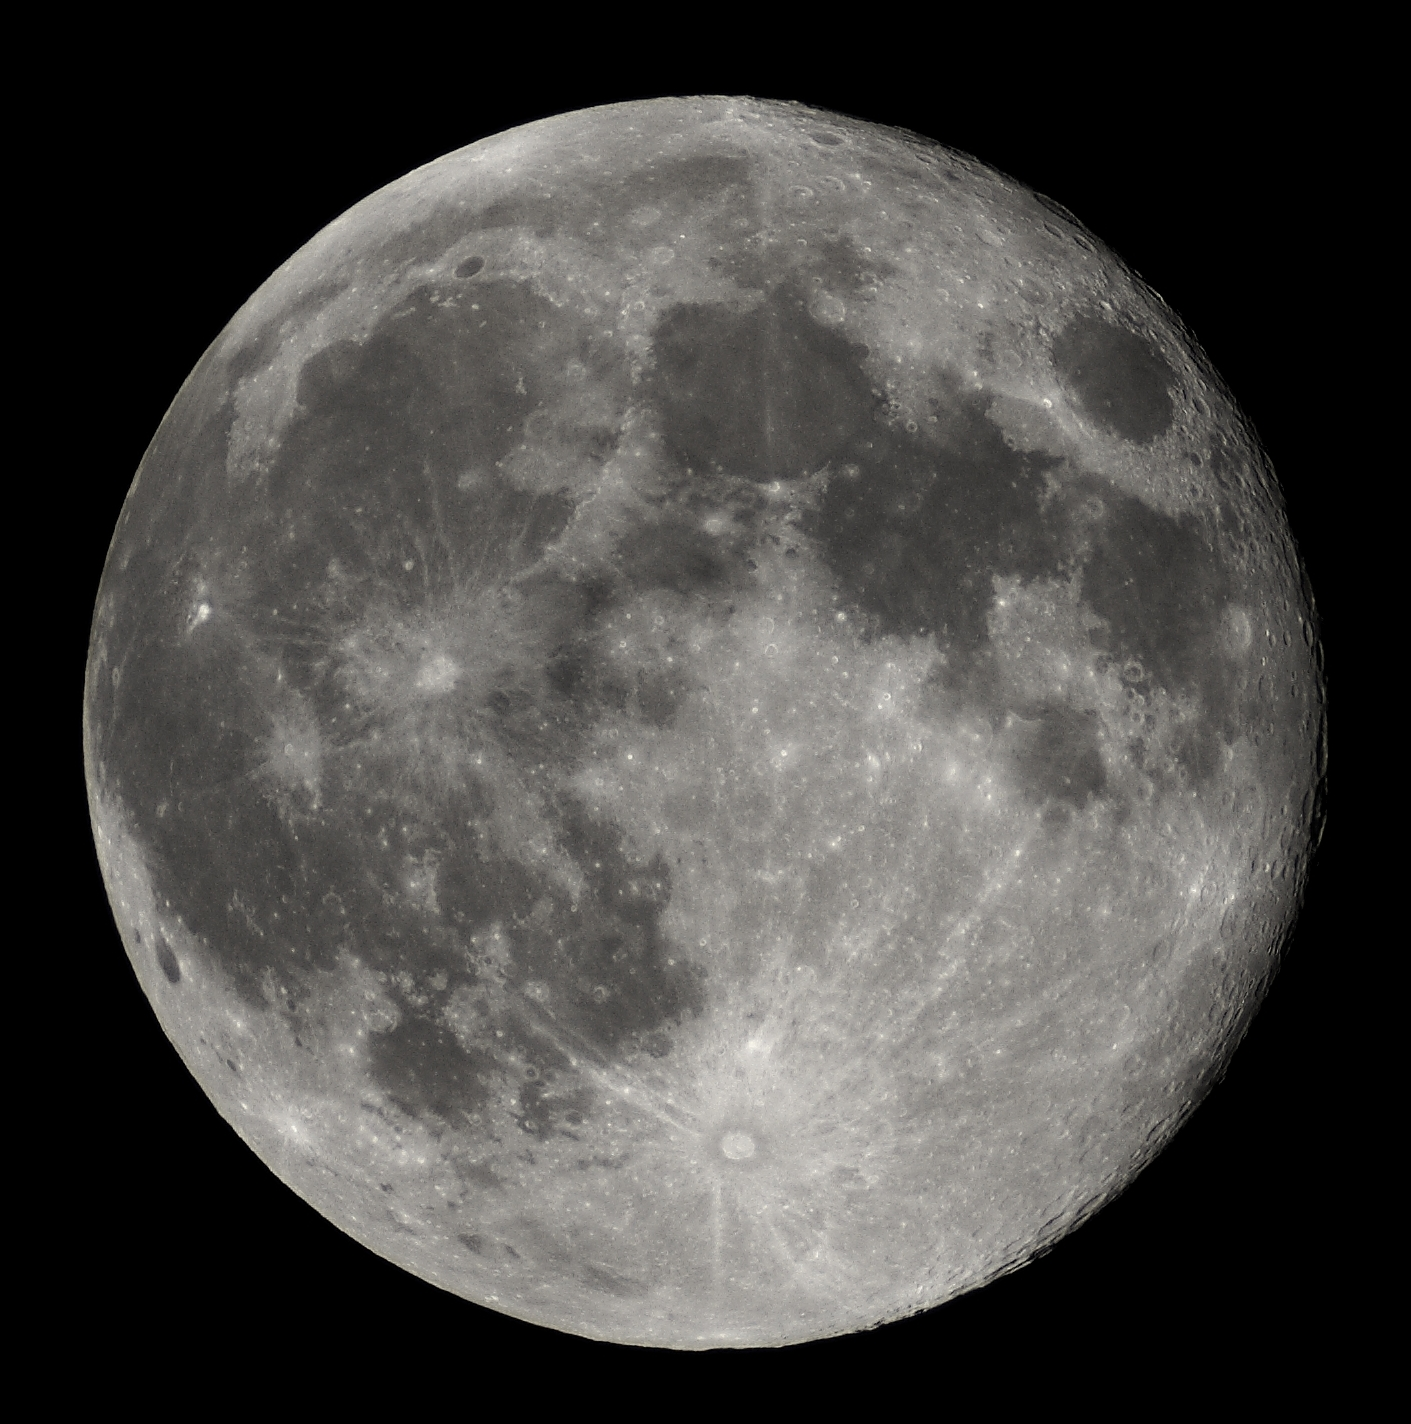 https://upload.wikimedia.org/wikipedia/commons/d/dd/Full_Moon_Luc_Viatour.jpg